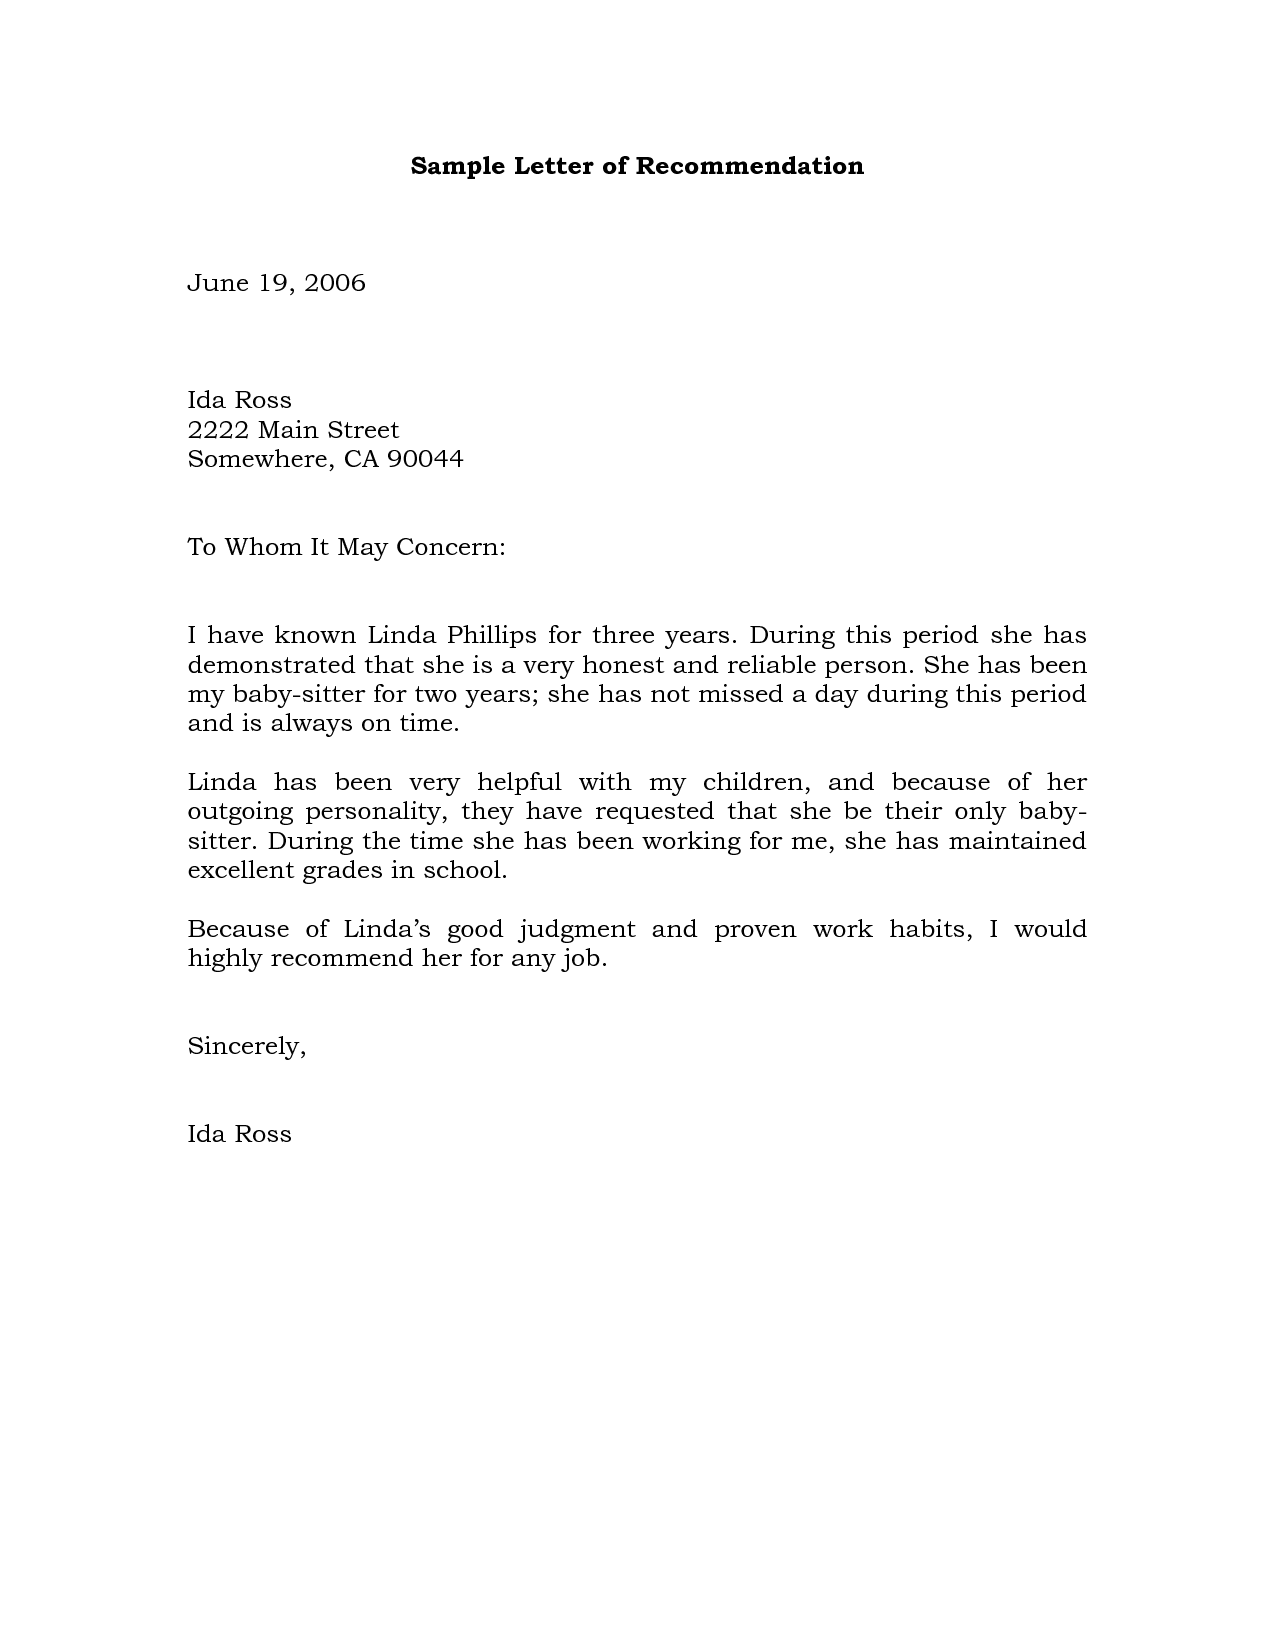 Business Recommendation Letter Here is a sample recommendation – Microsoft Letter of Recommendation Template